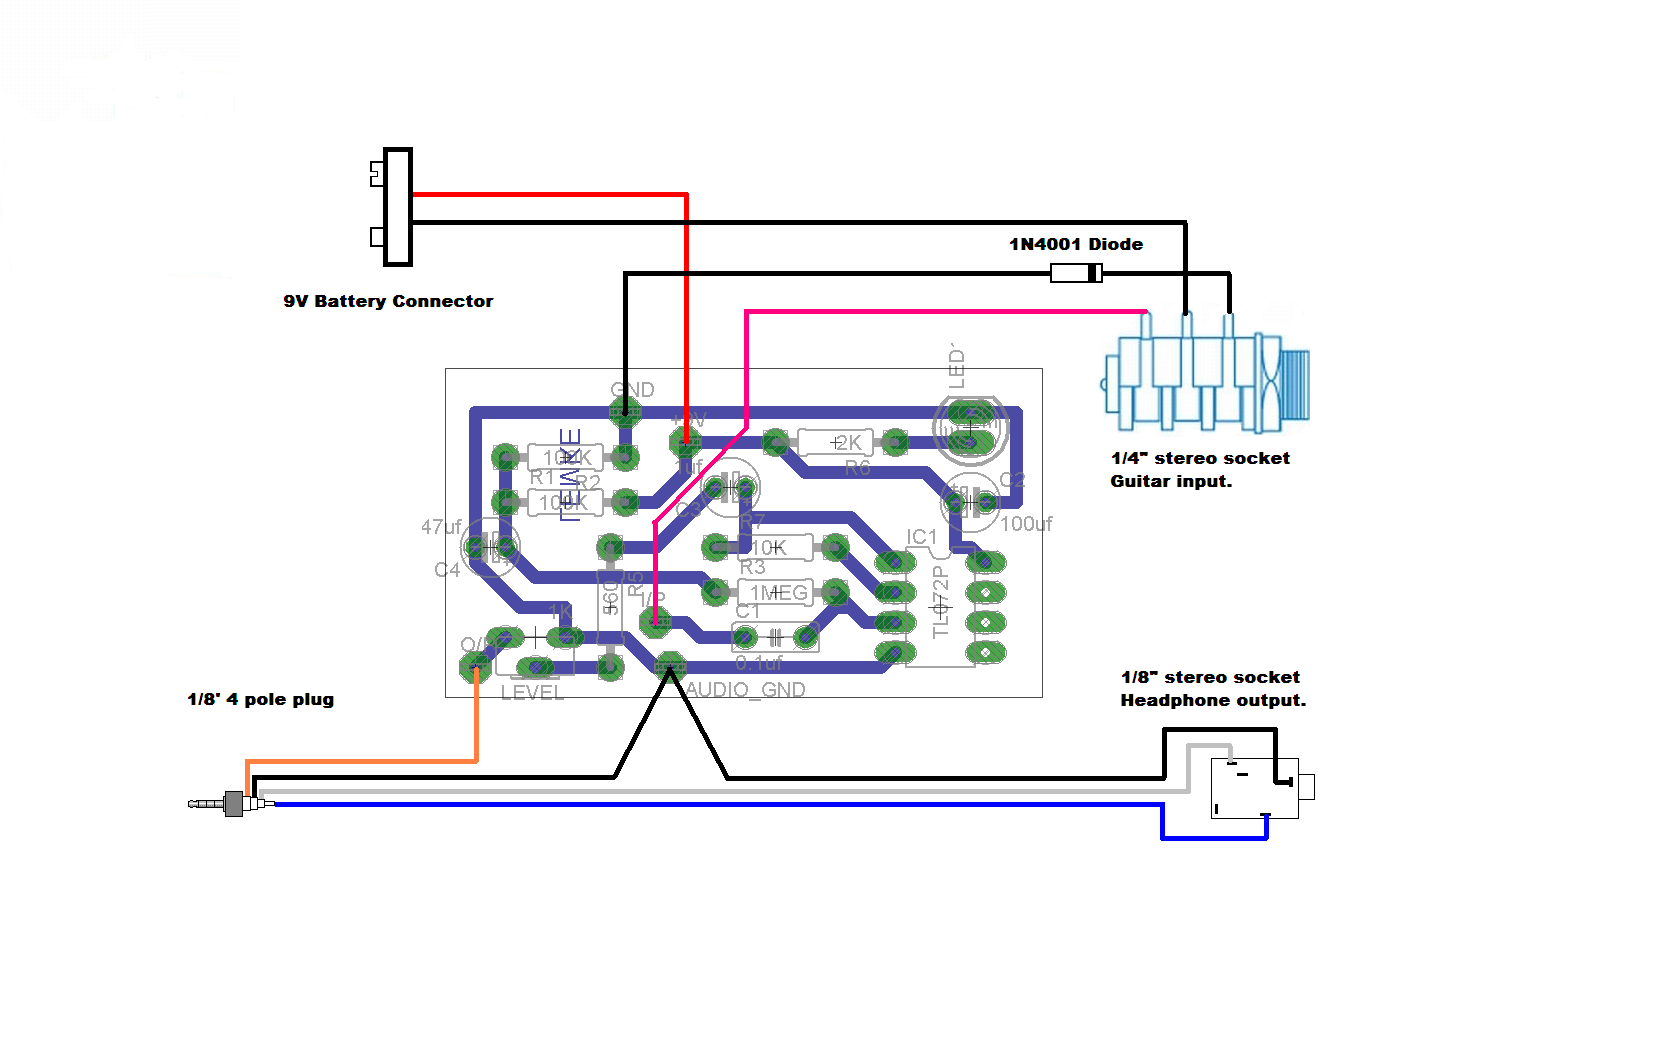 Need help with schematic to veroboard! Usb Guitar Cable Wiring Diagram on usb 2.0 cable diagram, usb cable wire color code, ethernet wiring diagram, usb cable schematic diagram, micro usb port diagram,